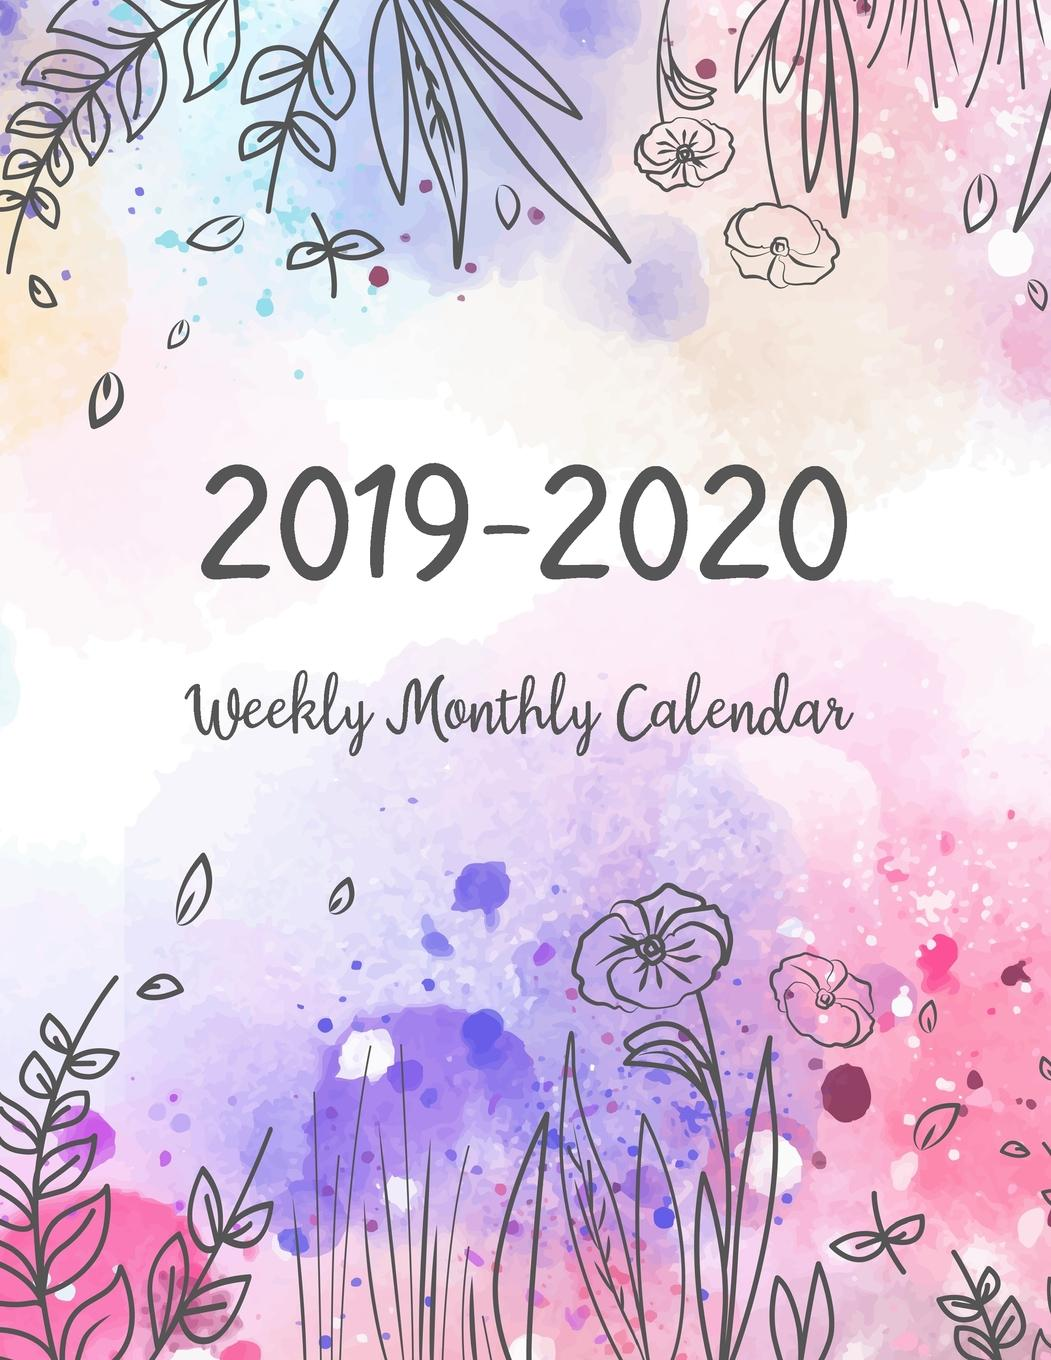 2019-2020 Weekly Monthly Calendar: Two Years Daily Weekly Monthly Calendar Planner 24 Months January 2019 to... by